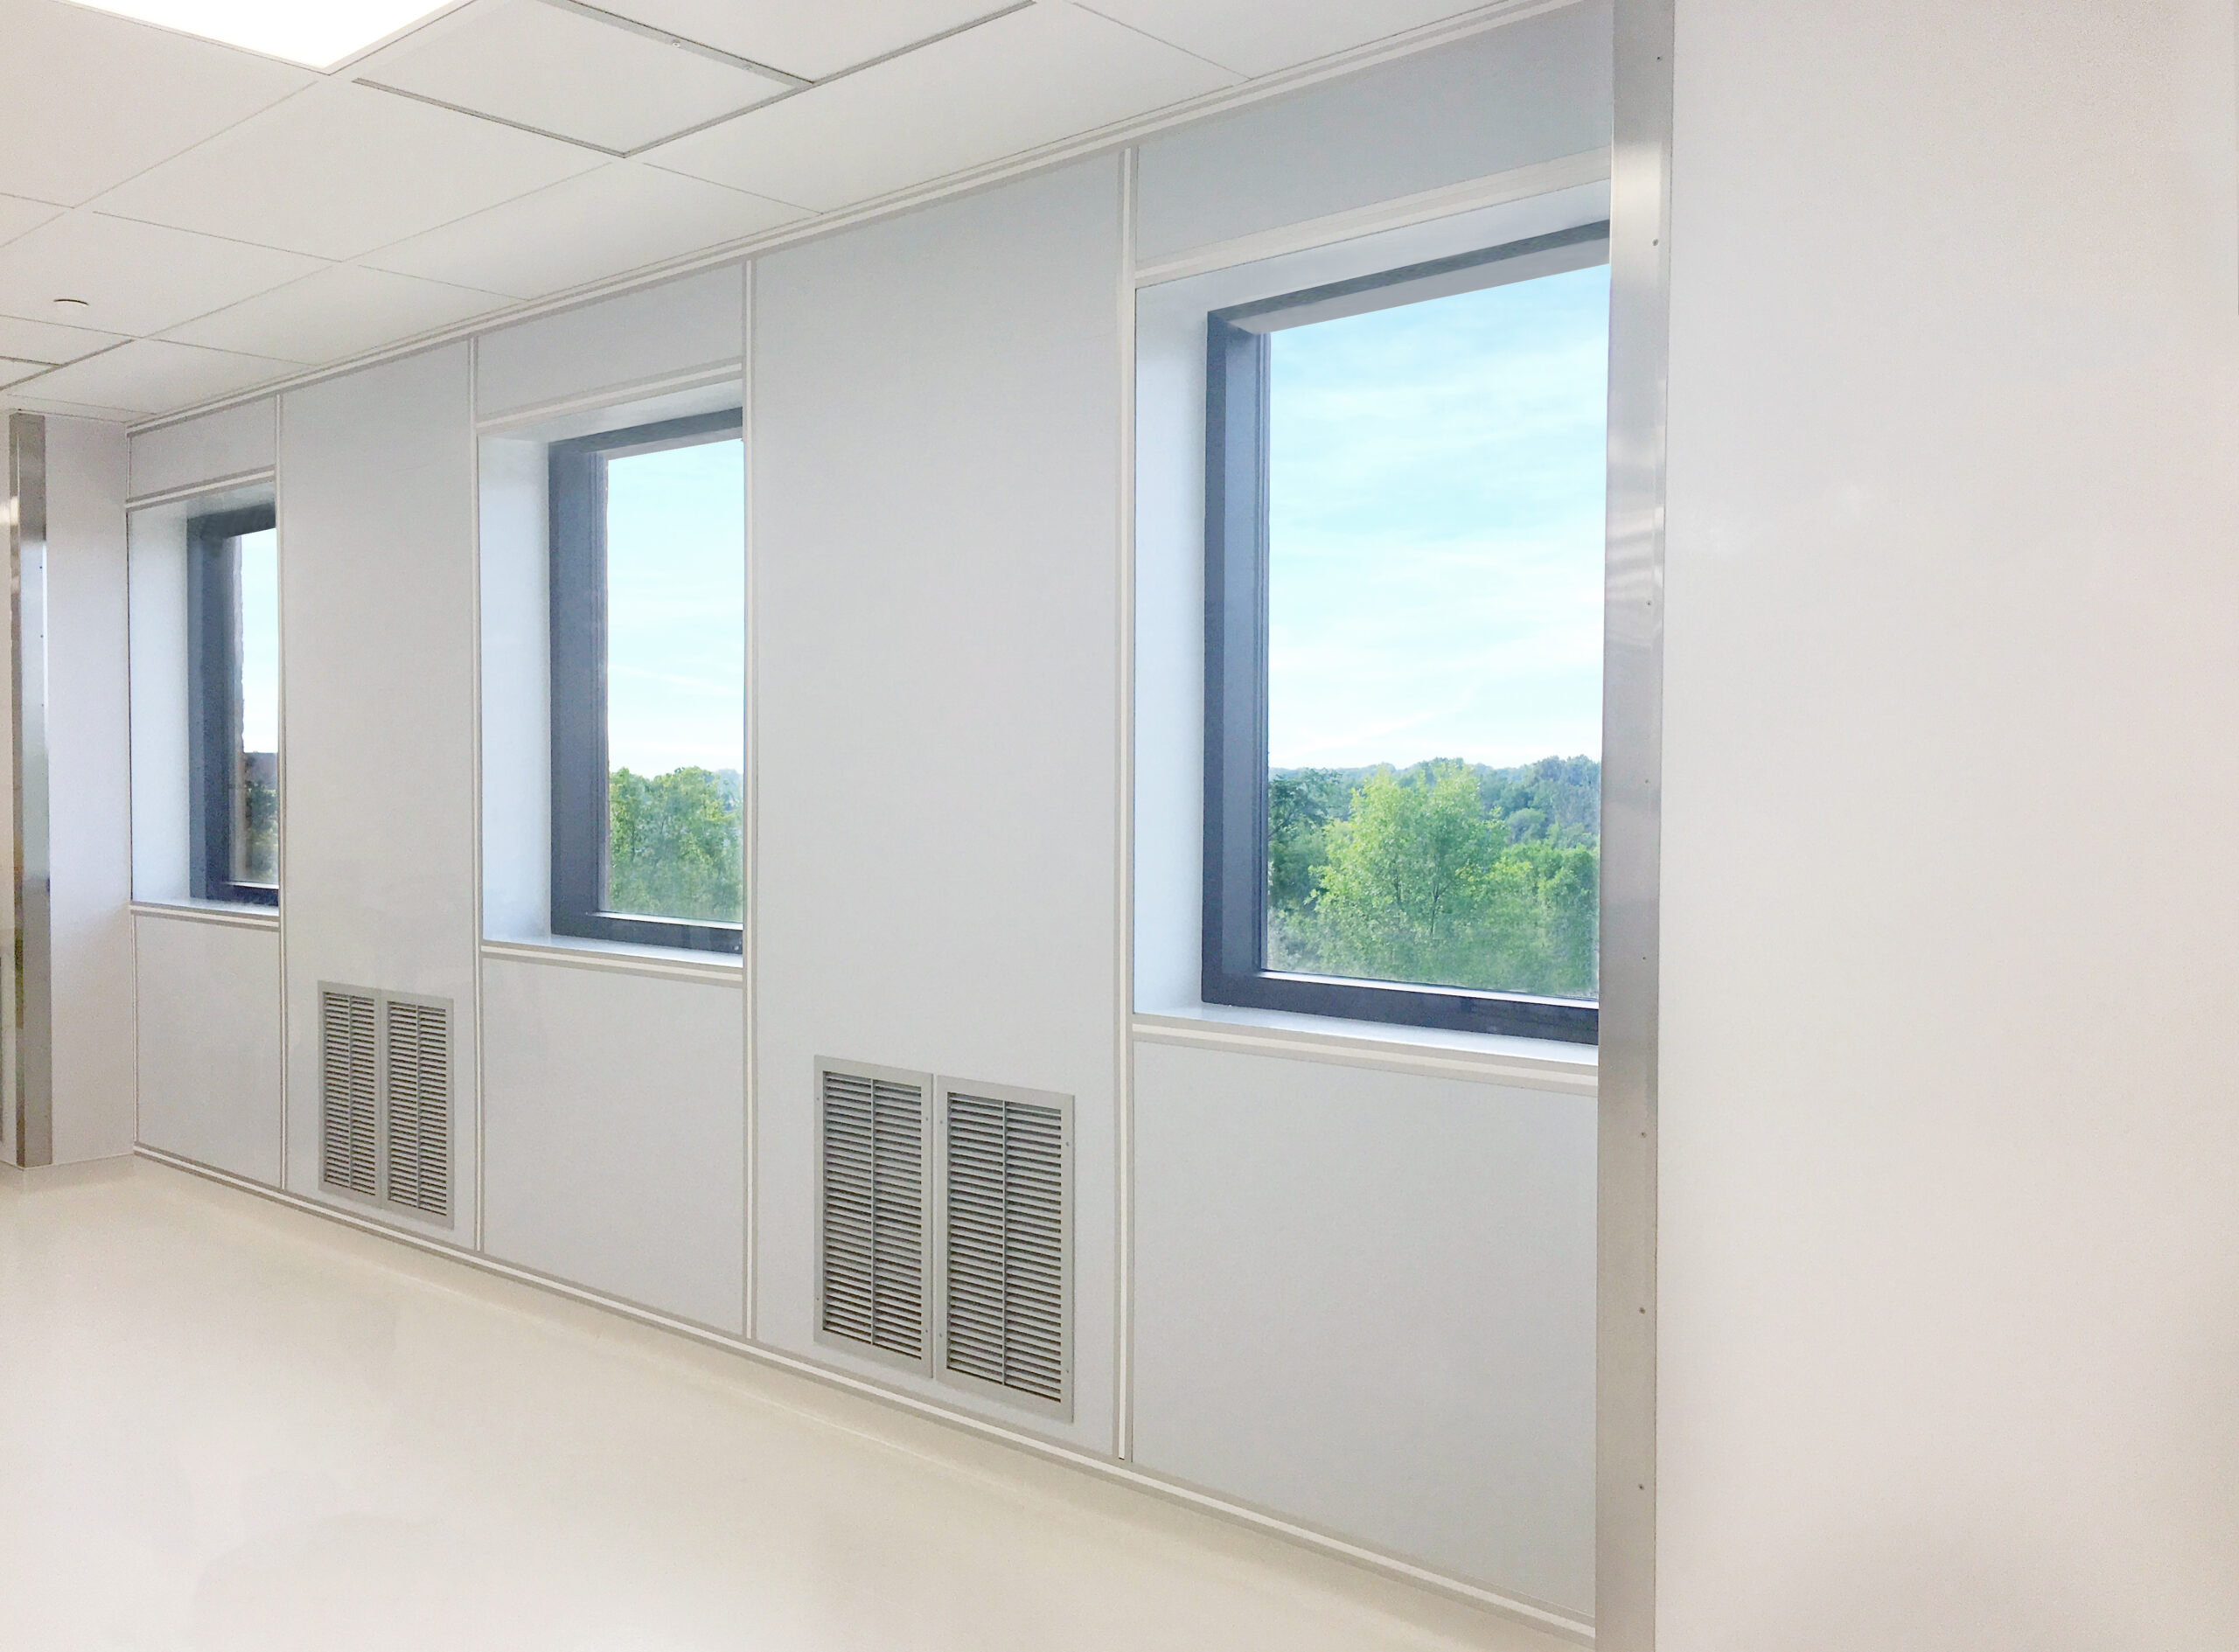 Windows in a cleanroom that offer views to nature for employees.